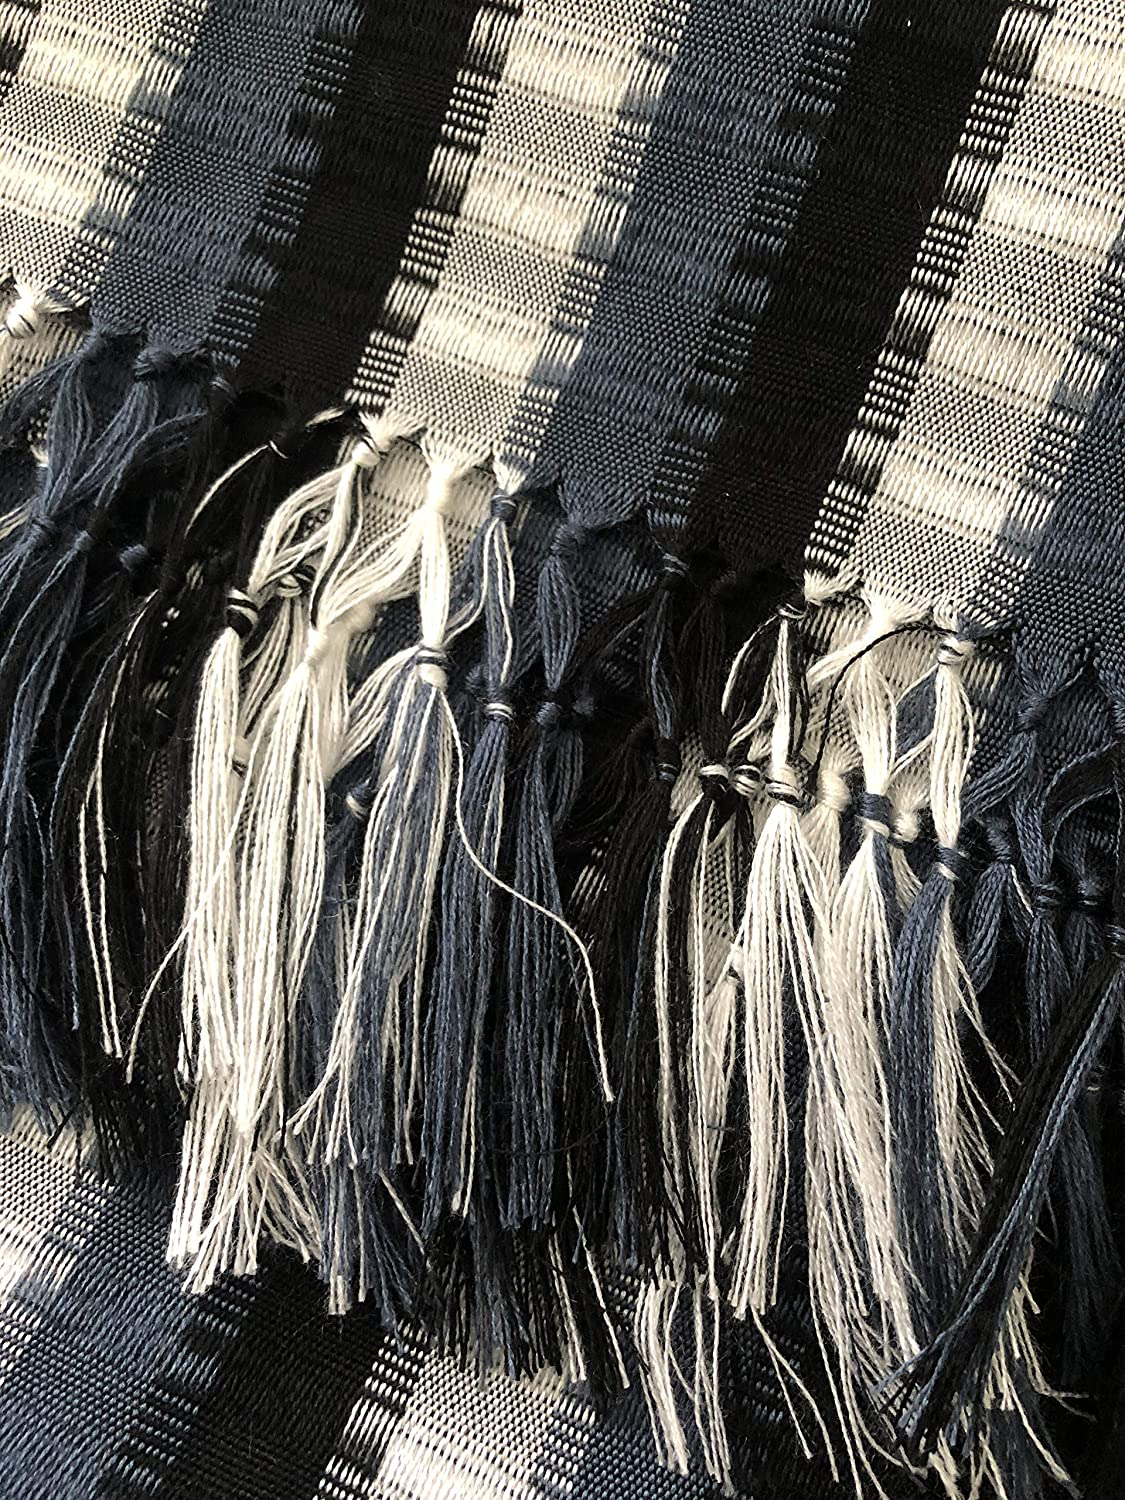 Mayan Arts Cotton Scarves, Handmade in Guatemala, Cultural Element Fashion Scarf Green, Brown, and Black